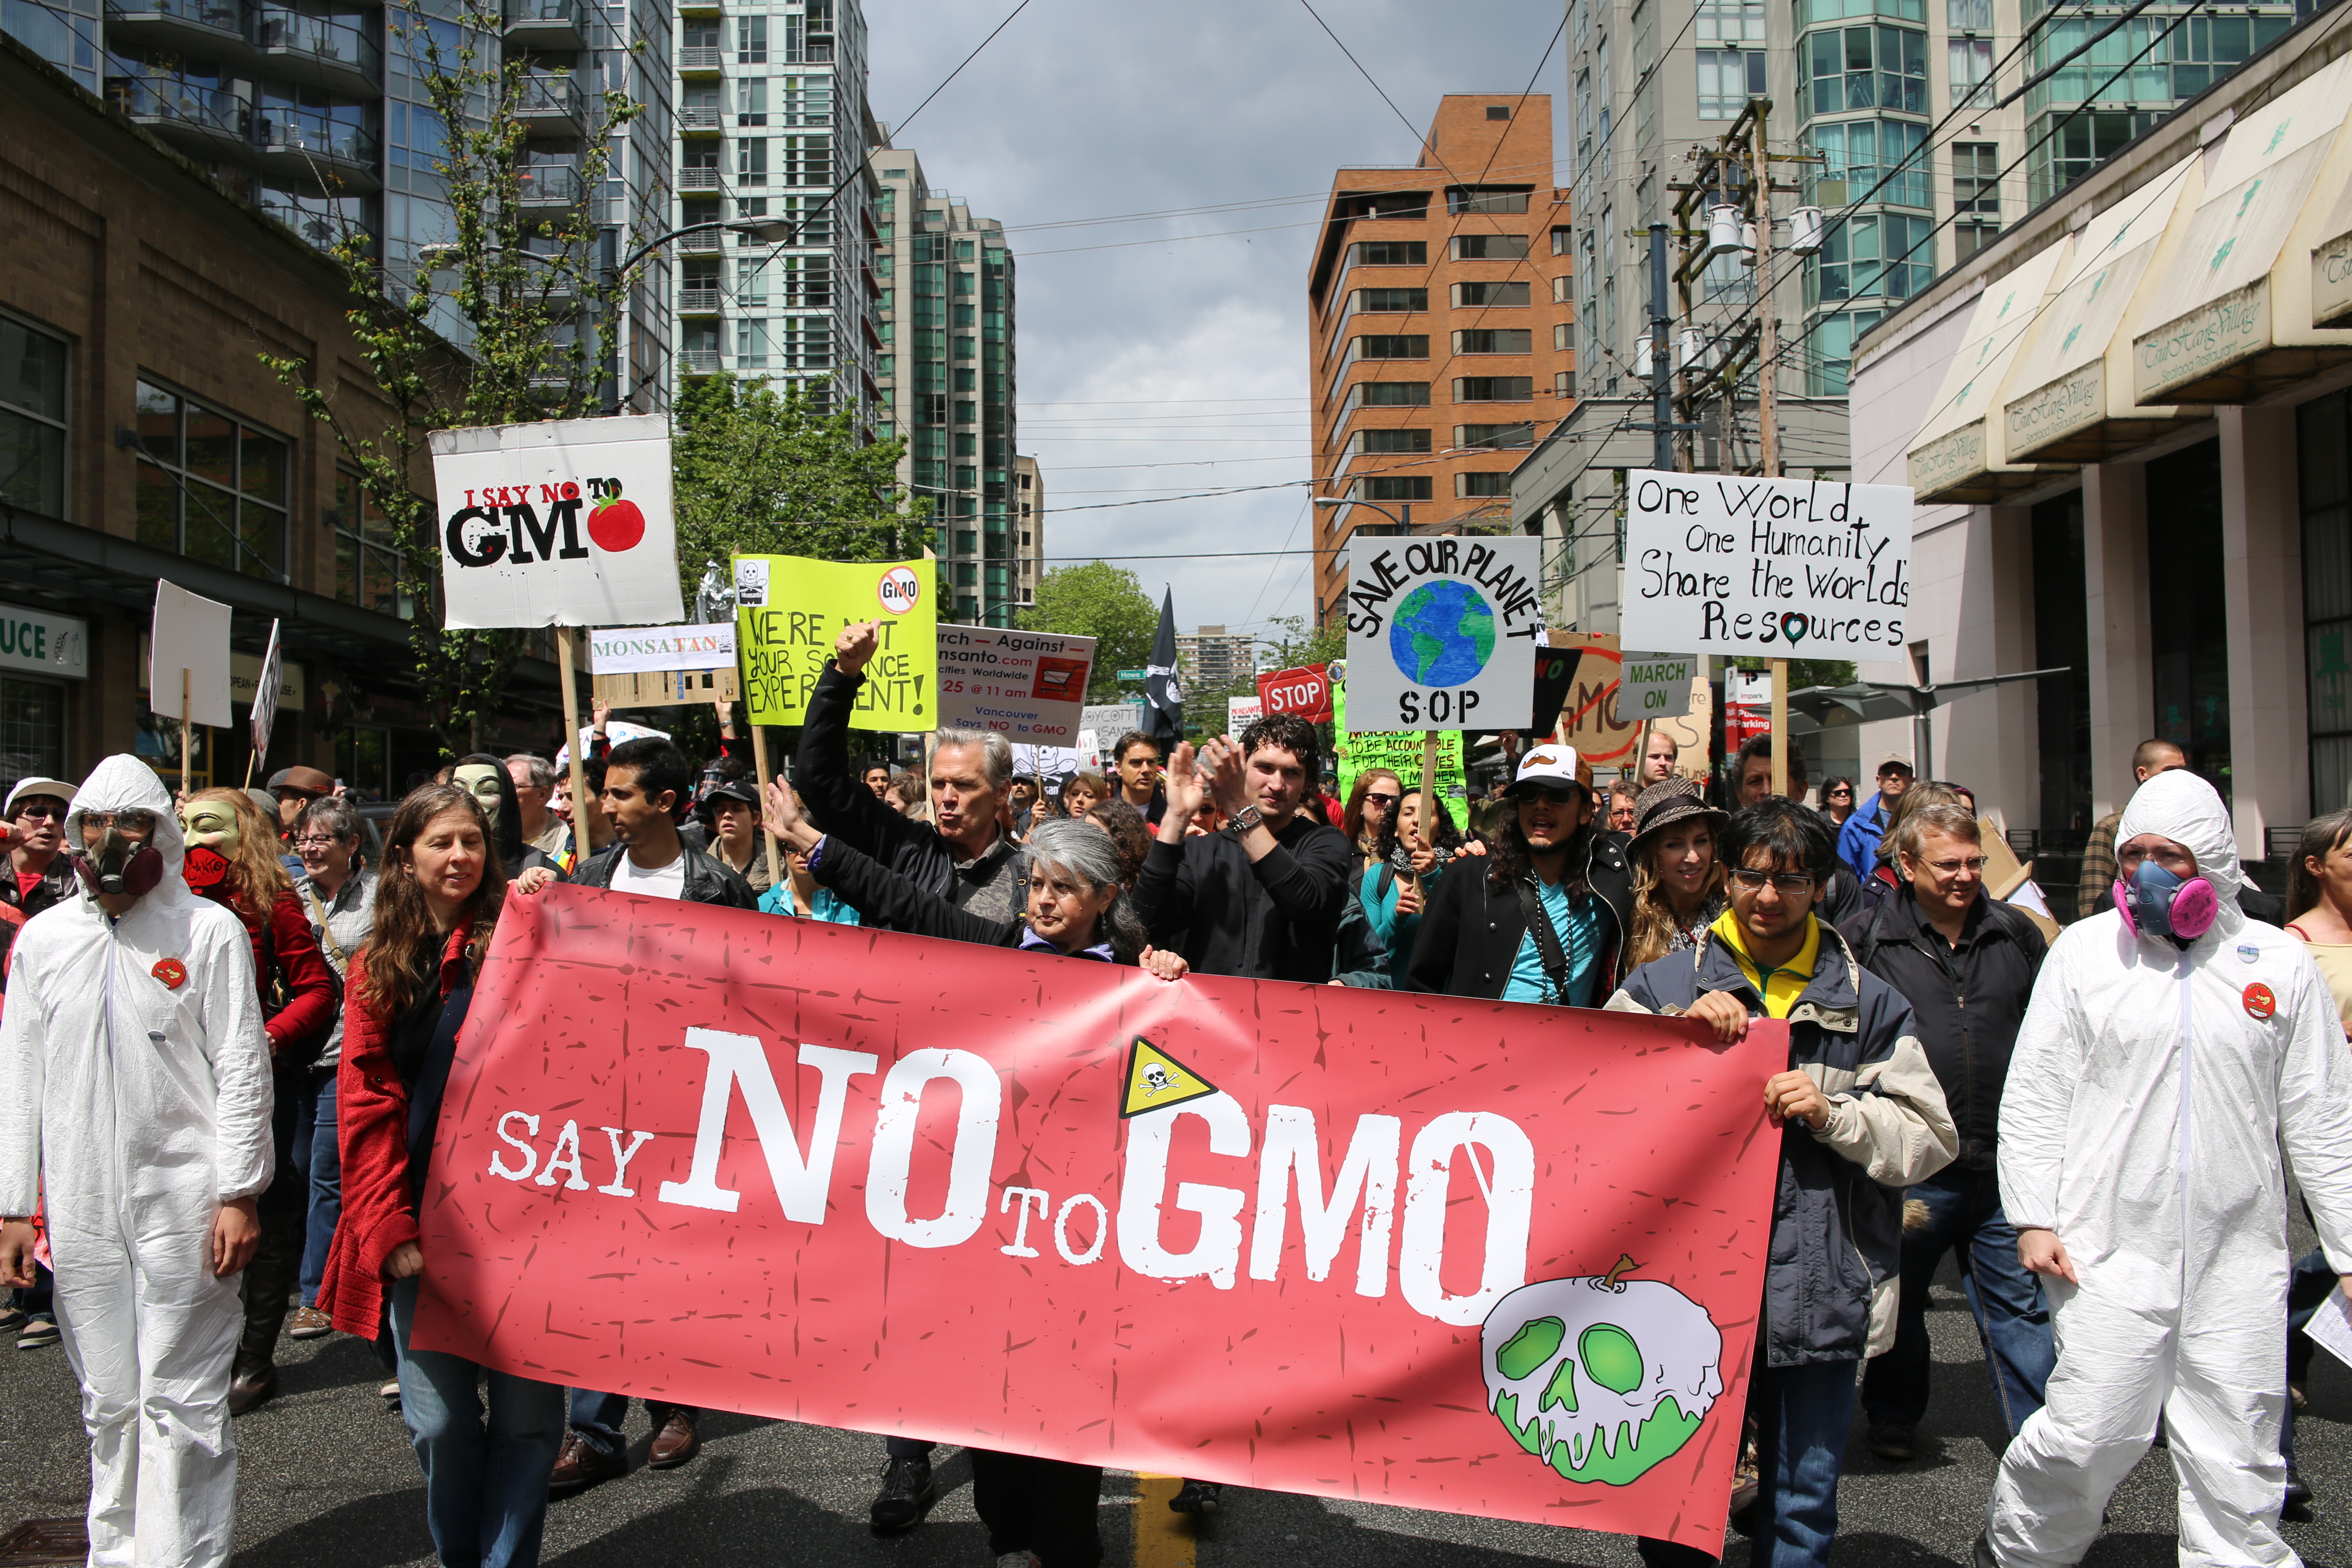 Individuals protesting the use of GMOs or Genetically Modified Organisms